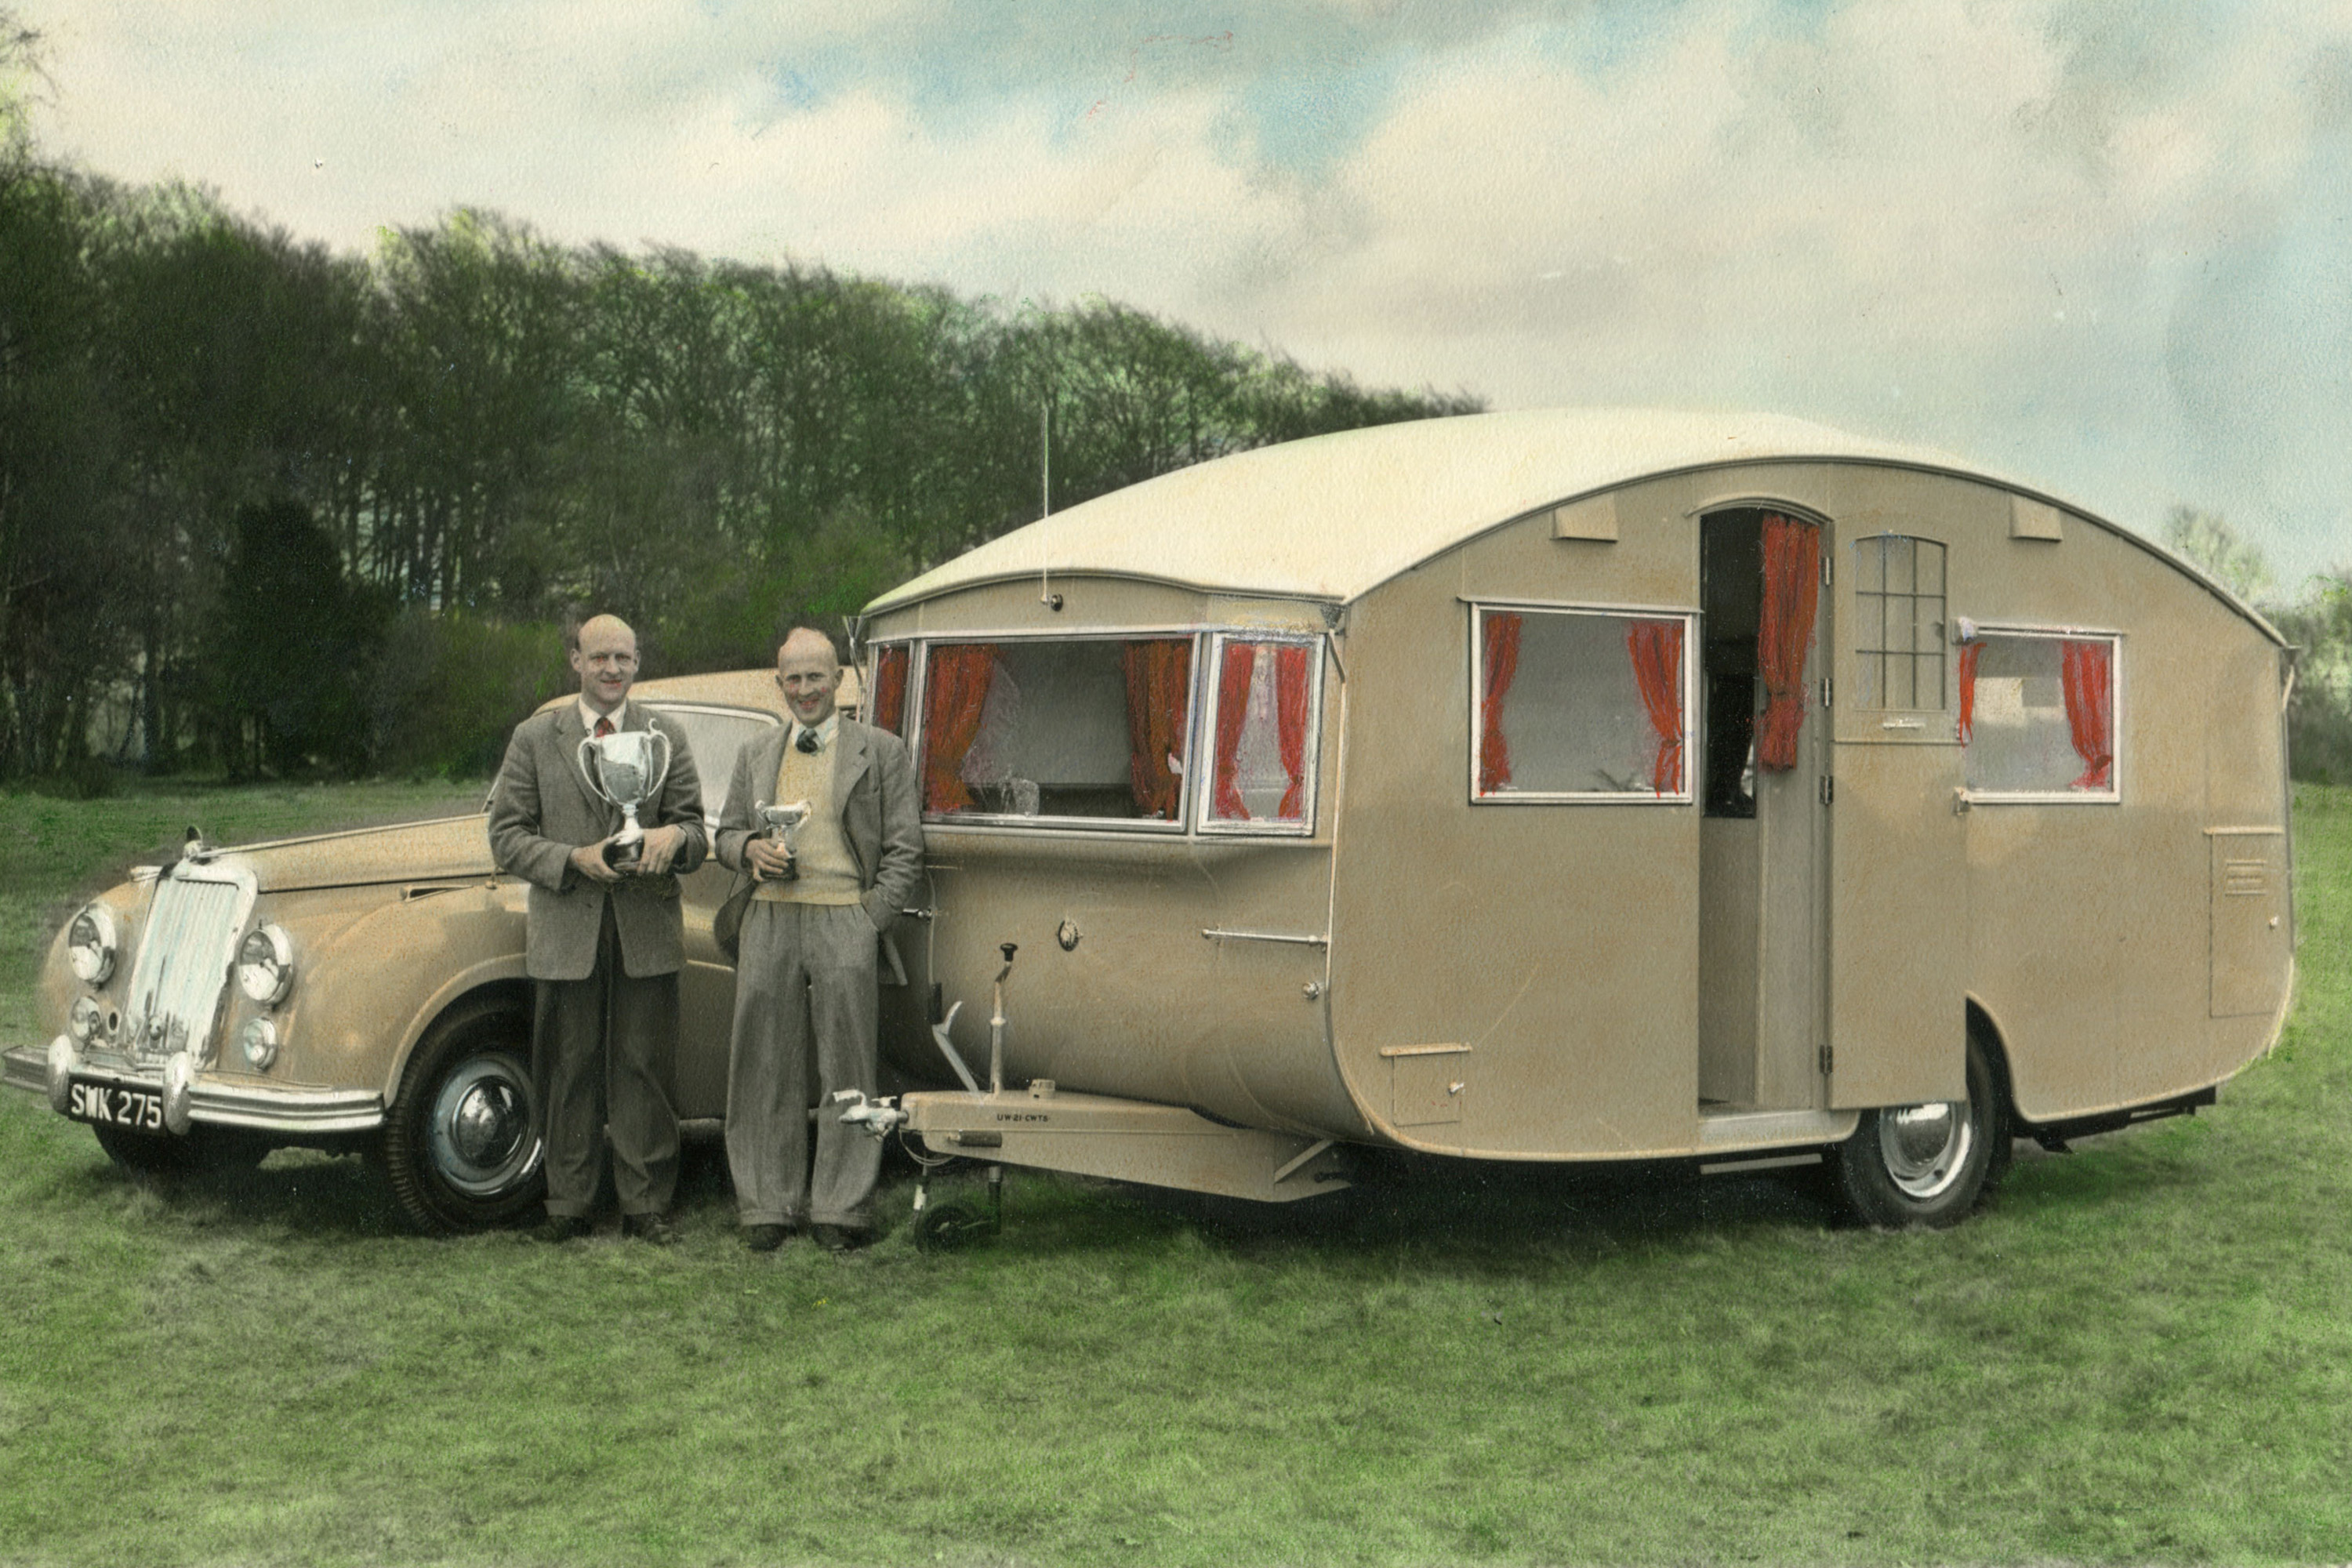 Two men holding trophies stood in front of a car and caravan